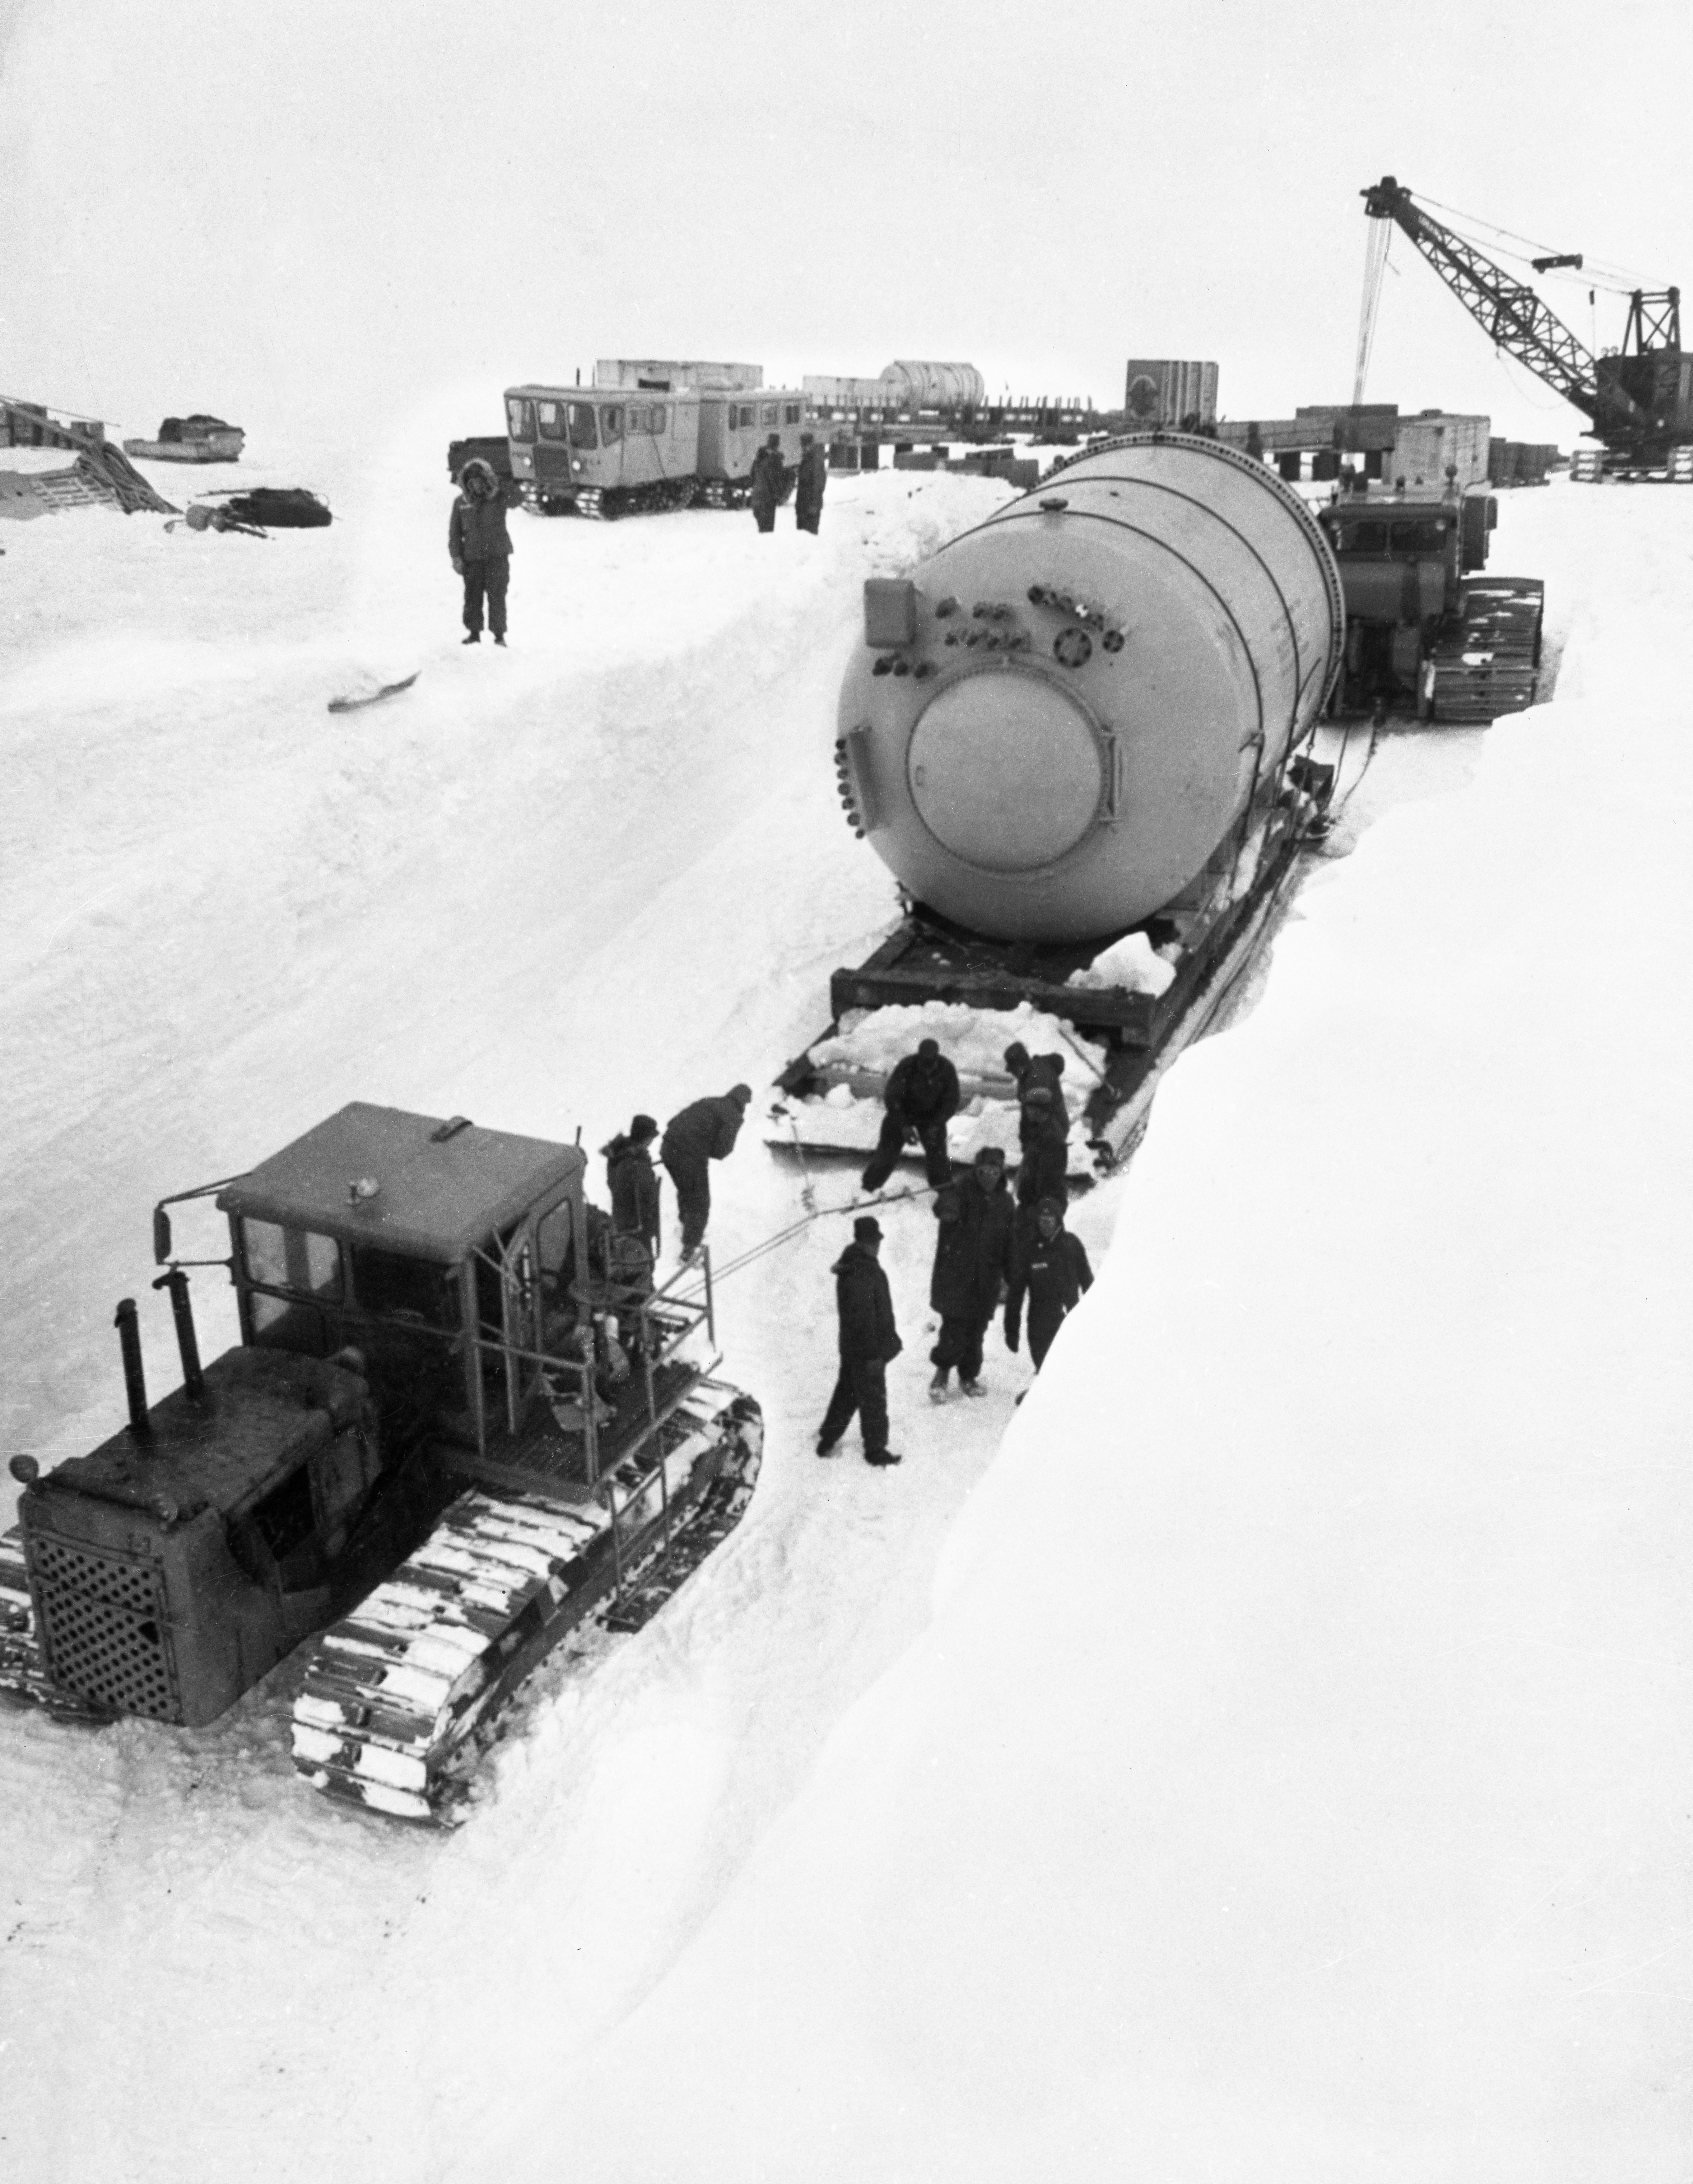 The U.S. Army Tried Portable Nuclear Power at Remote Bases 60 Years Ago – It Didn't Go Well